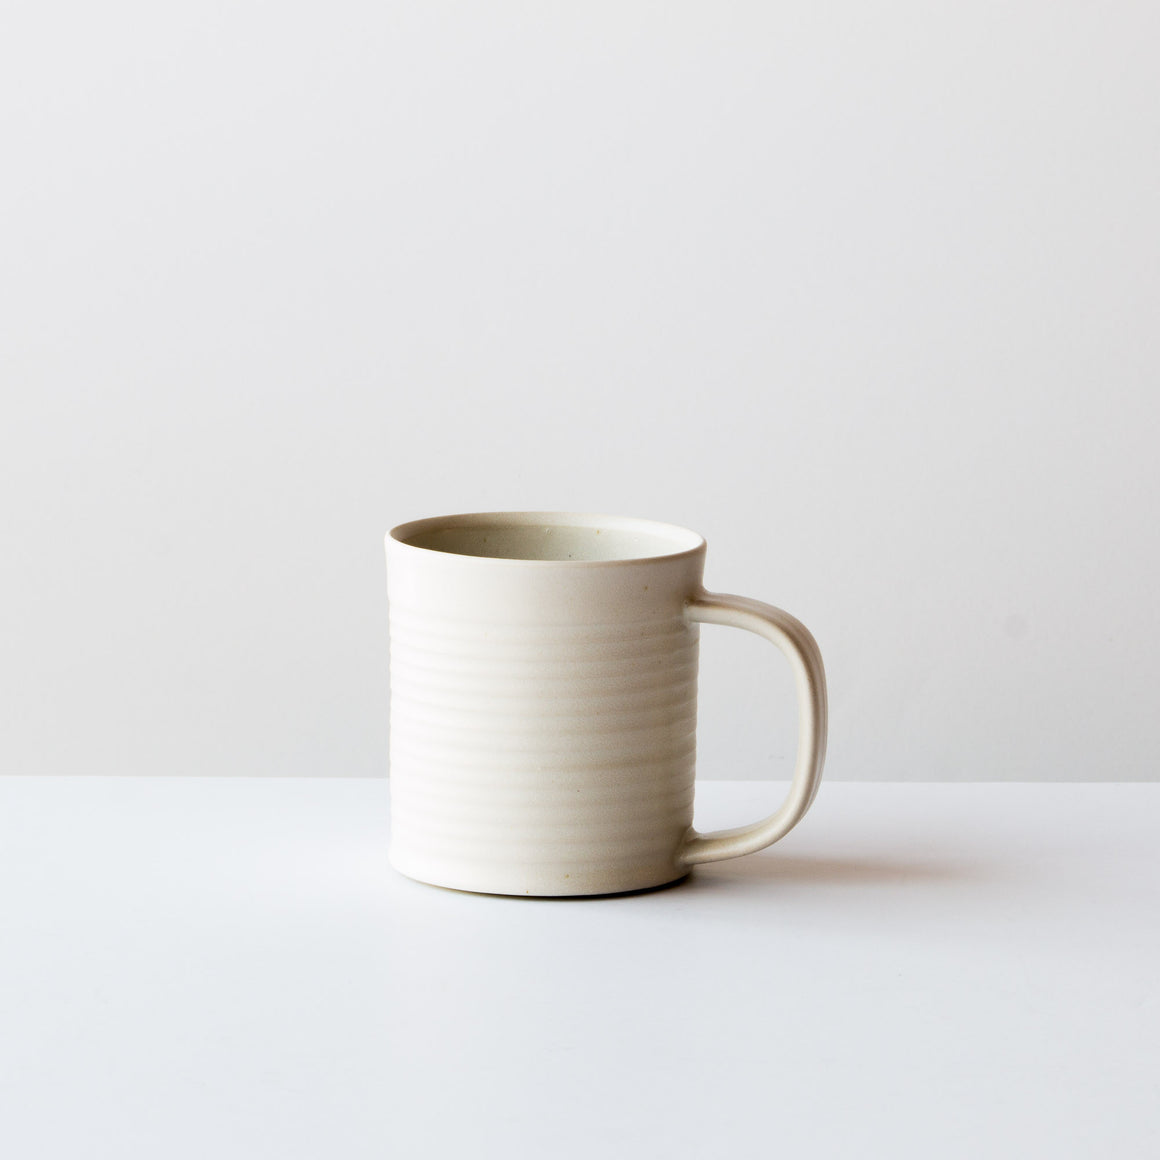 Hand Thrown Ceramic Coffee Mug / Cup - Black Colour - Sold by Chic & Basta